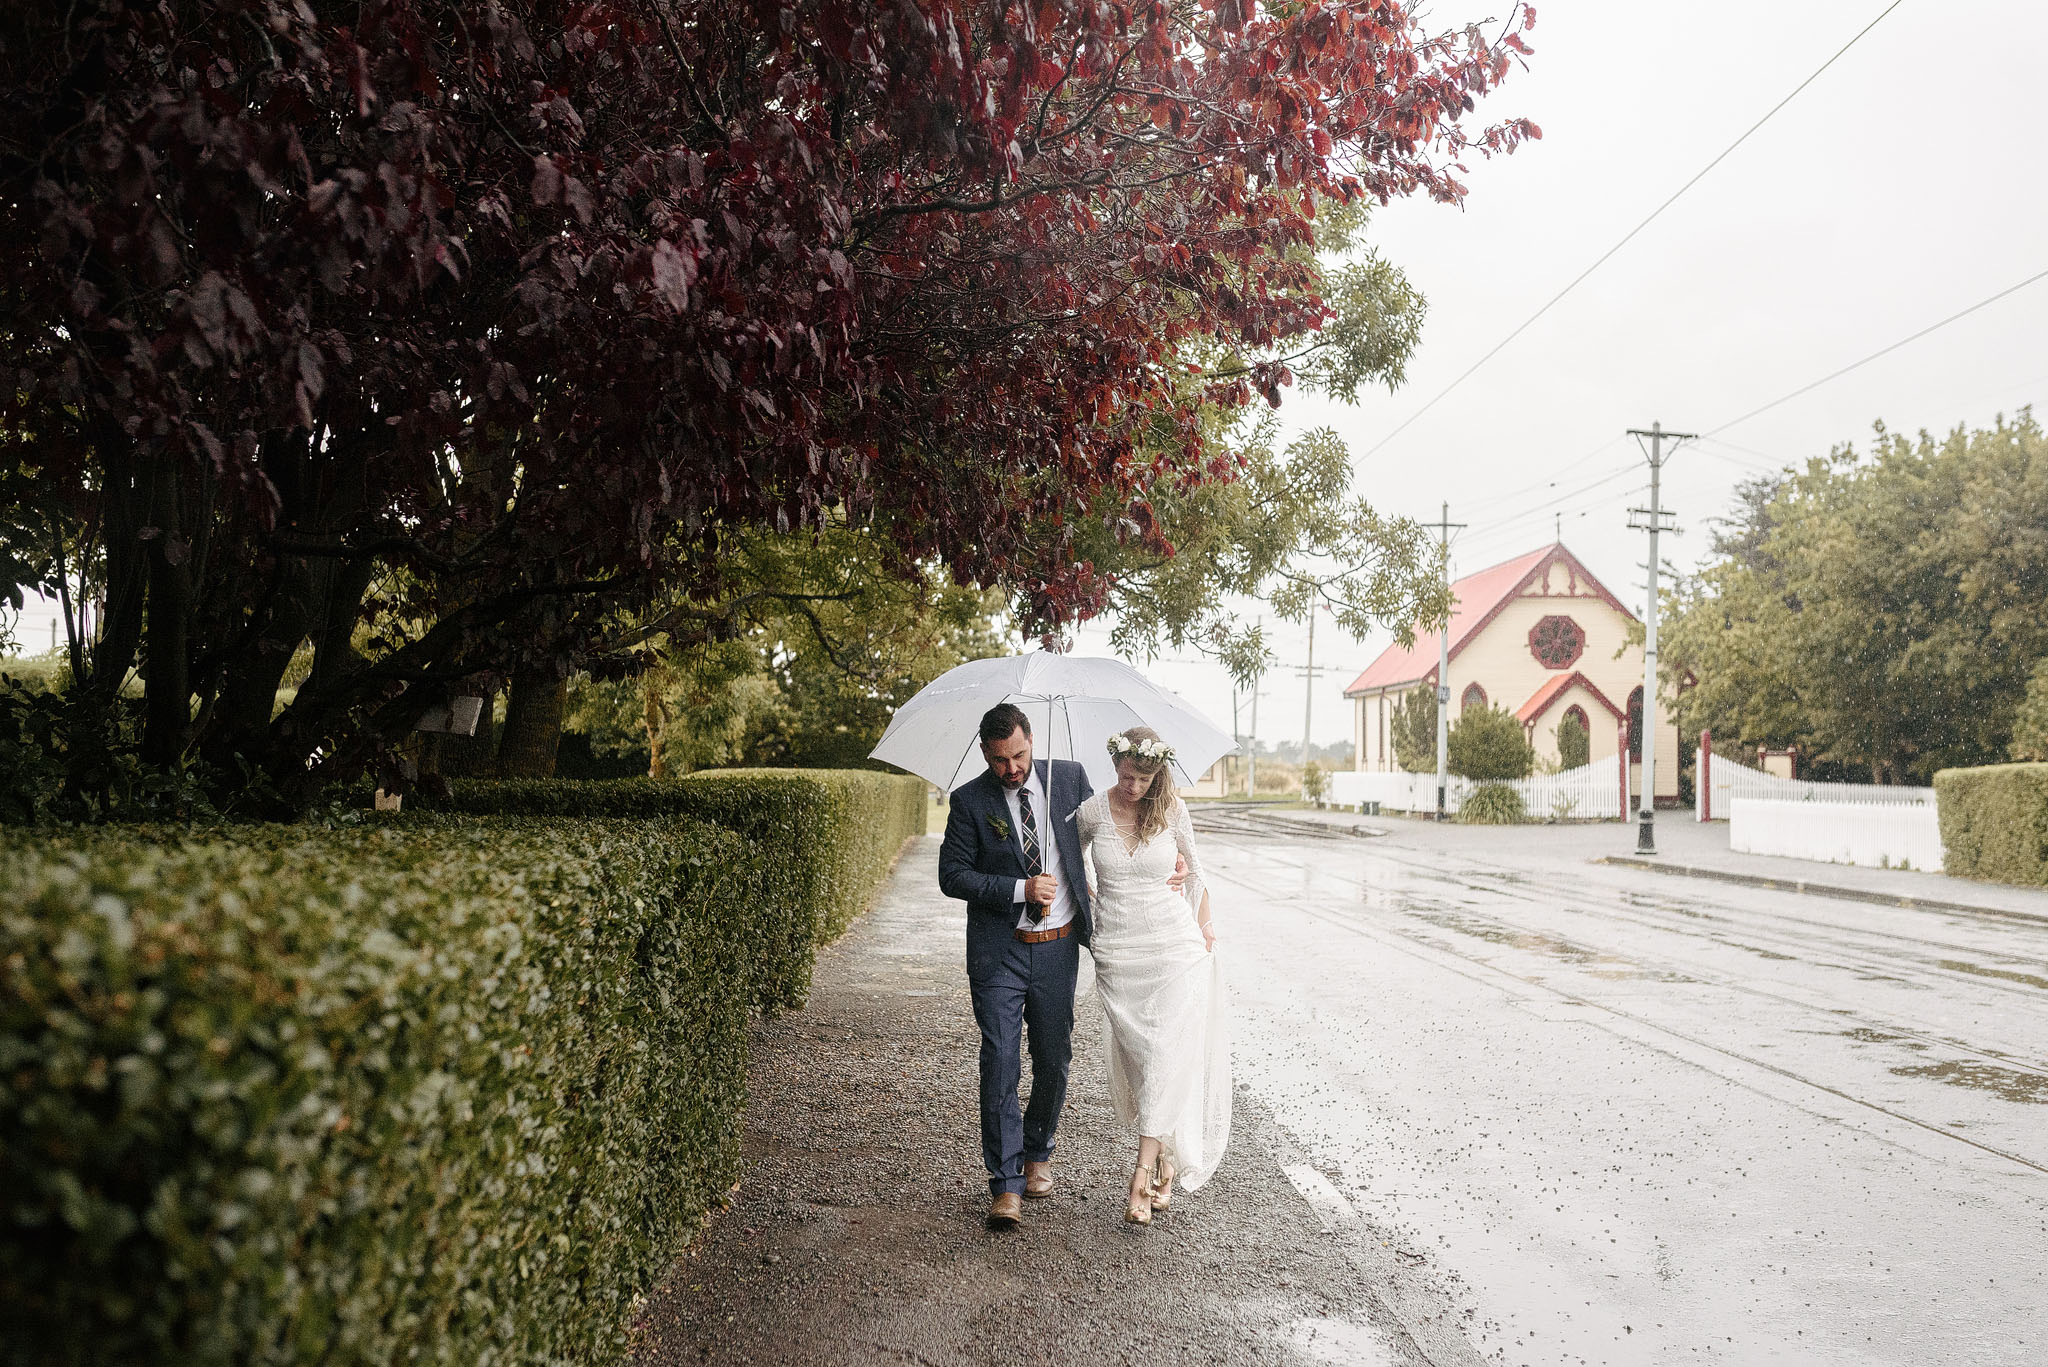 Rainy wedding at Ferrymead